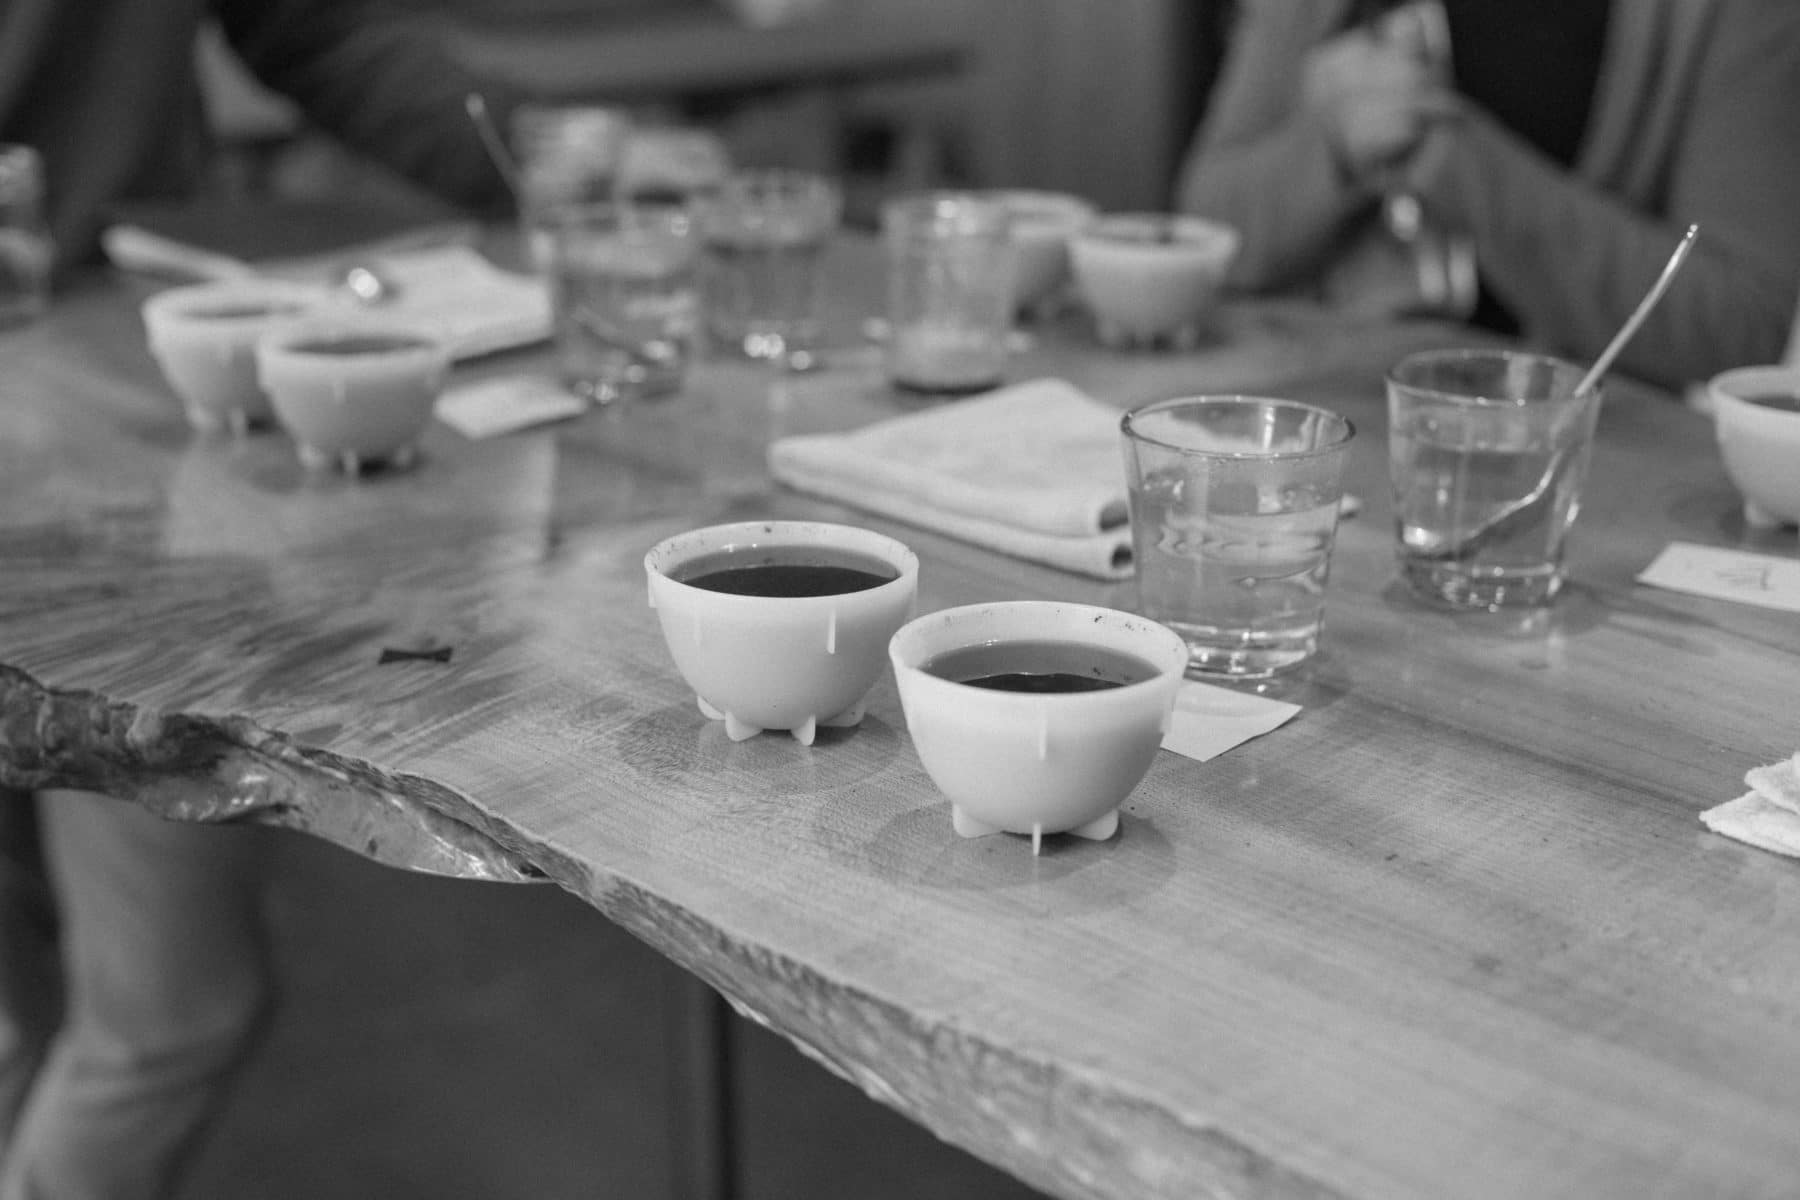 Cupping is a crucial step in our coffee sourcing to verify the quality and integrity of each selection.